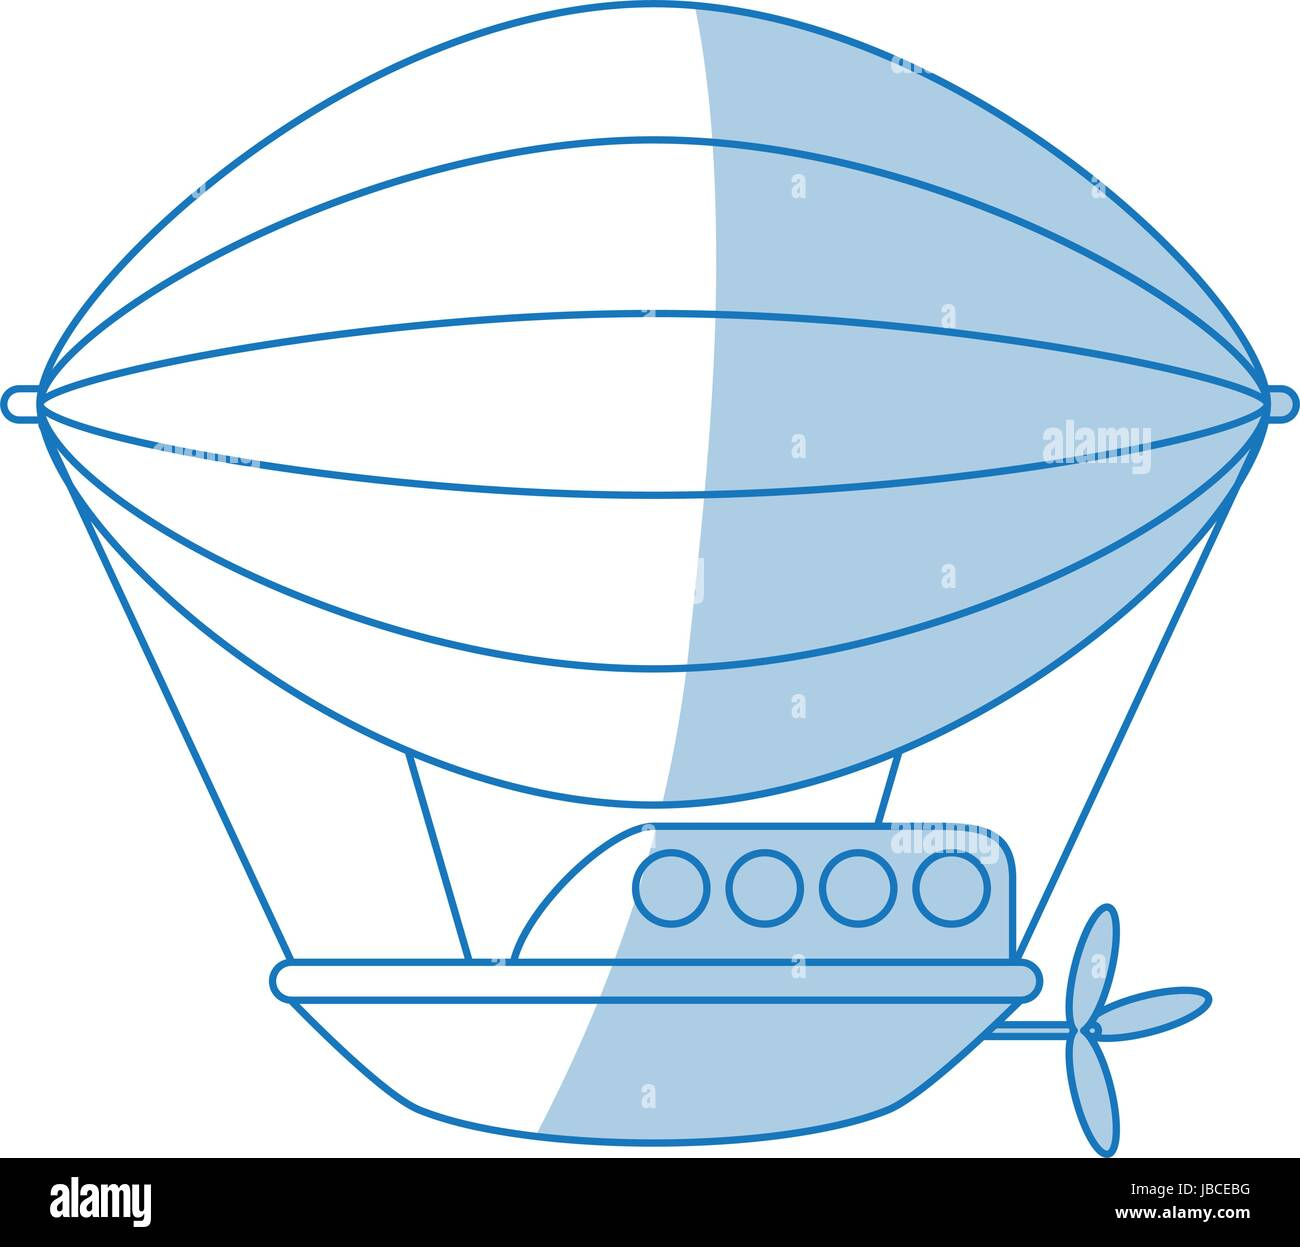 Dirigible icon design - Stock Vector